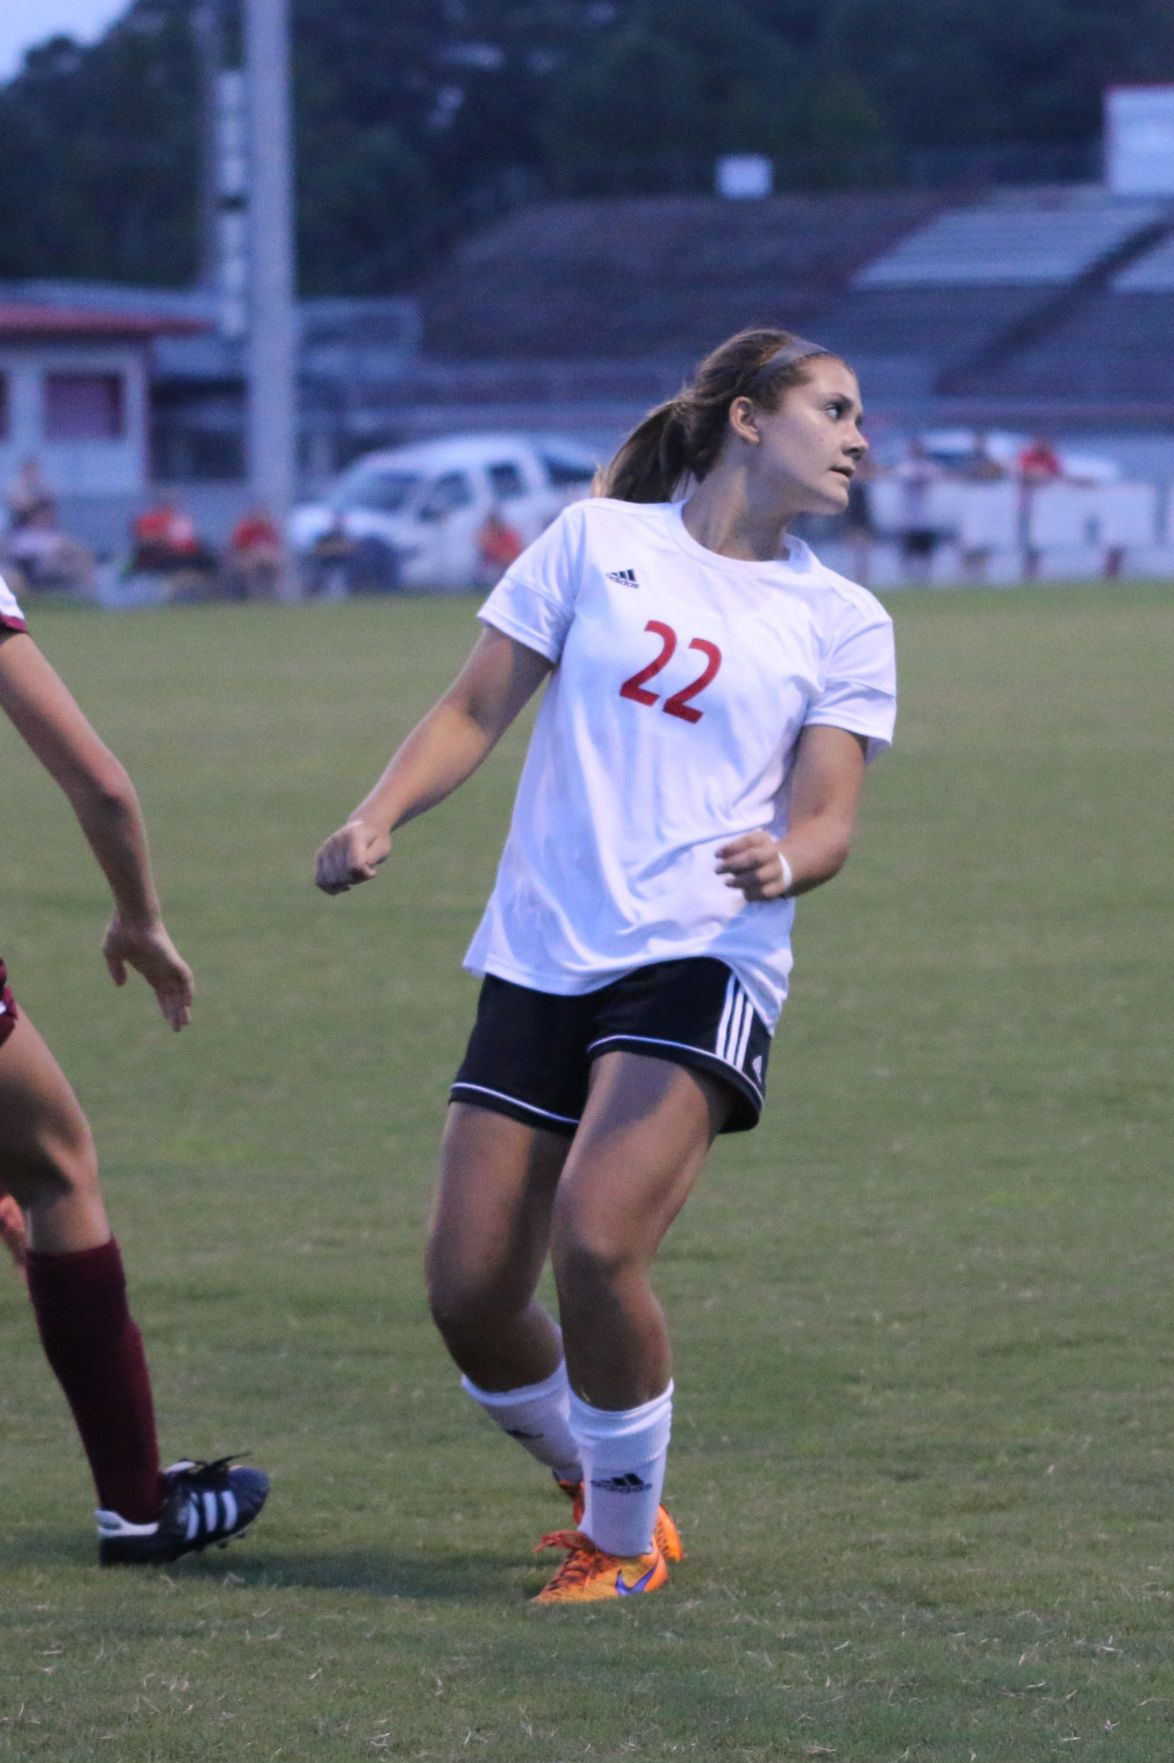 TUESDAY SPORTS ROUNDUP: CCHS soccer stops Warren County; CCHS volleyball remains unbeaten in district